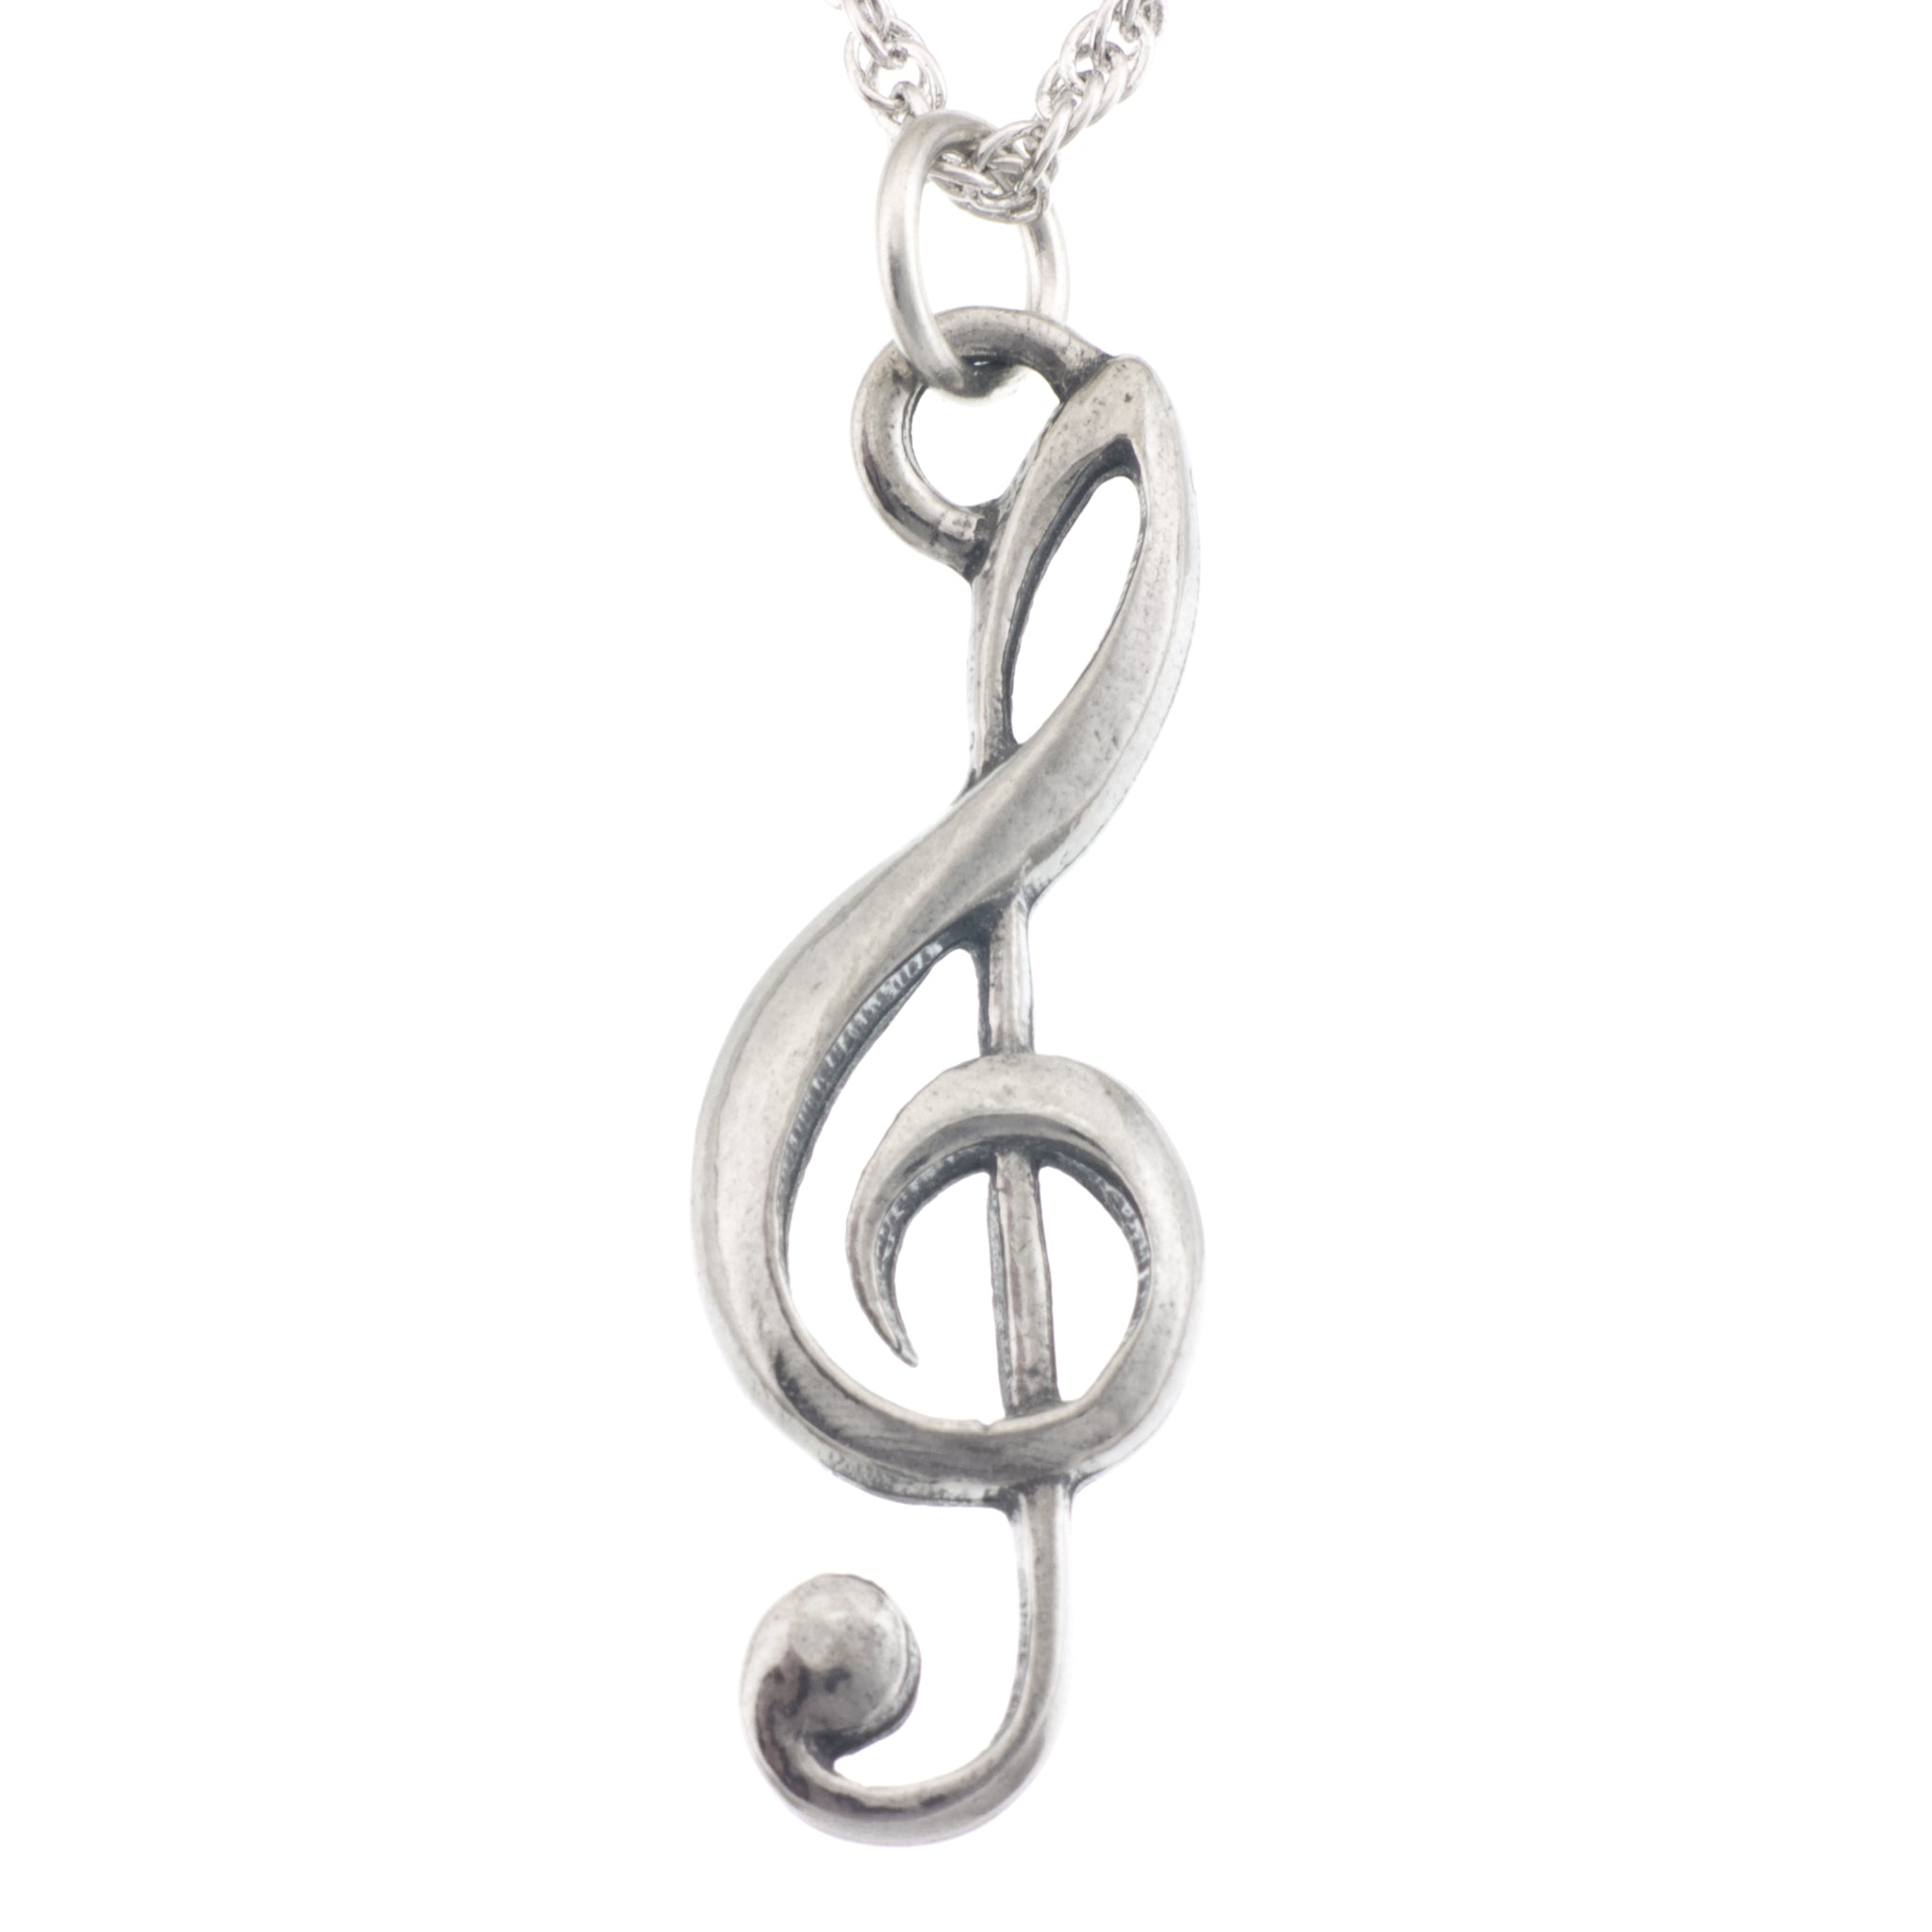 pendant drop products necklace clef f claud l rosegold model young music